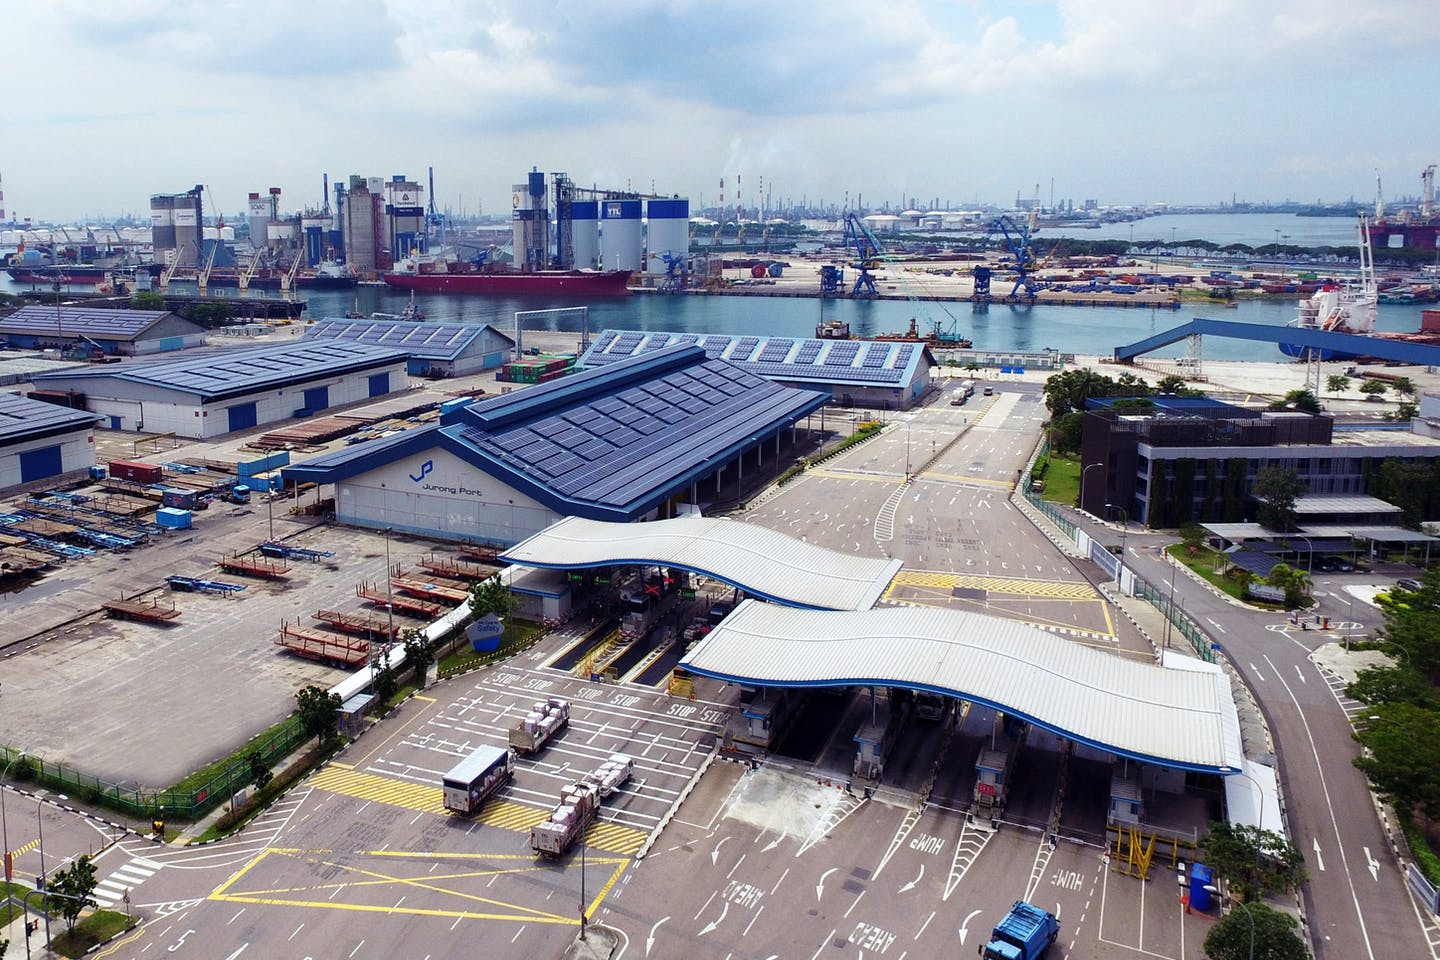 Jurong Port in Singapore